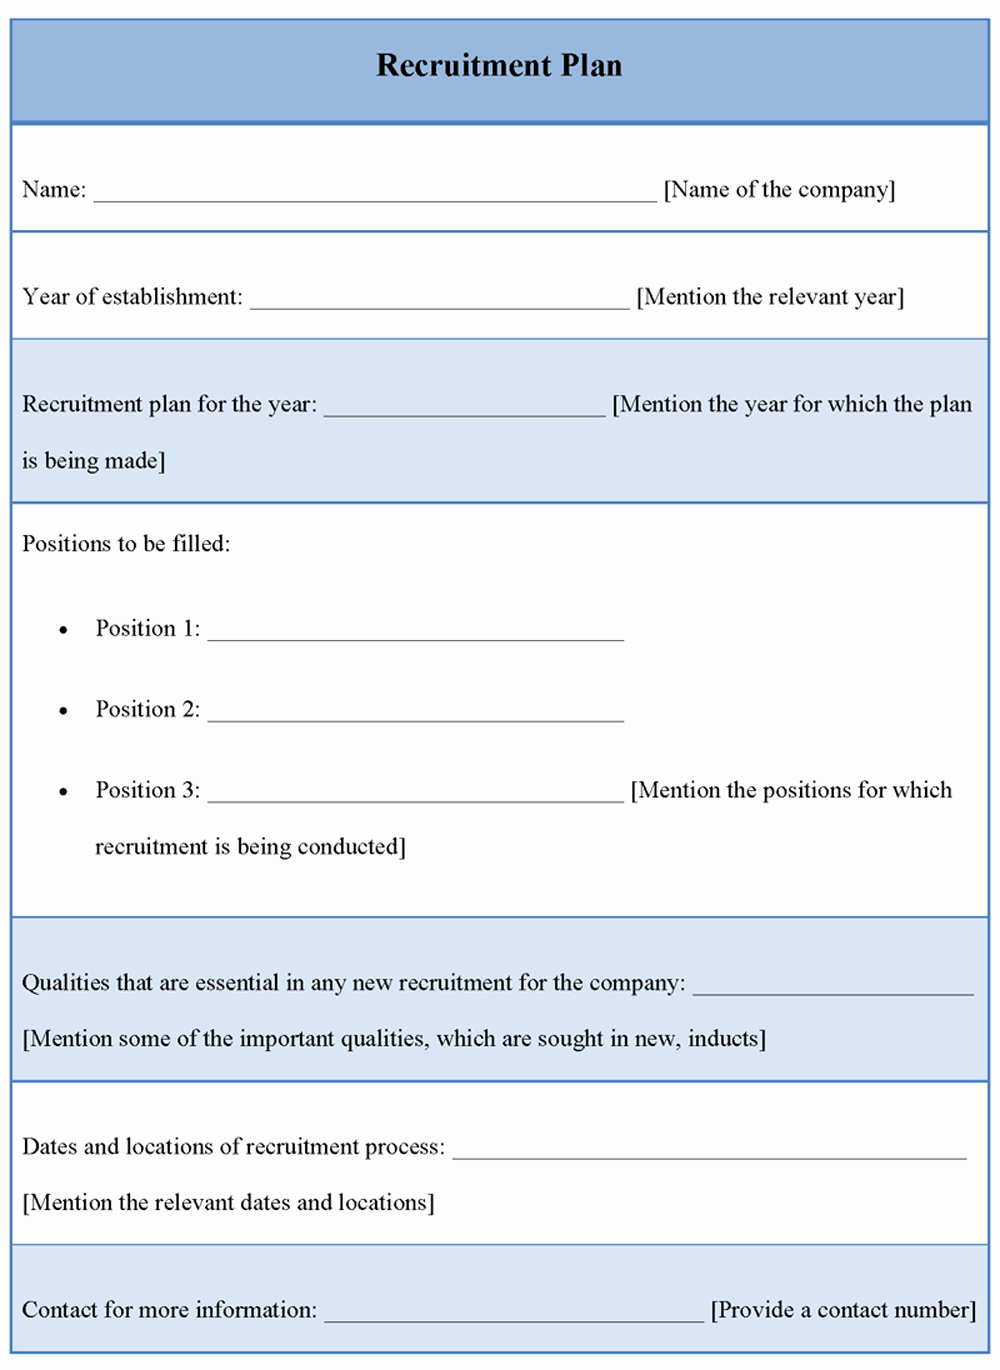 Recruitment Action Plan Template Beautiful Recruitment Plan Template